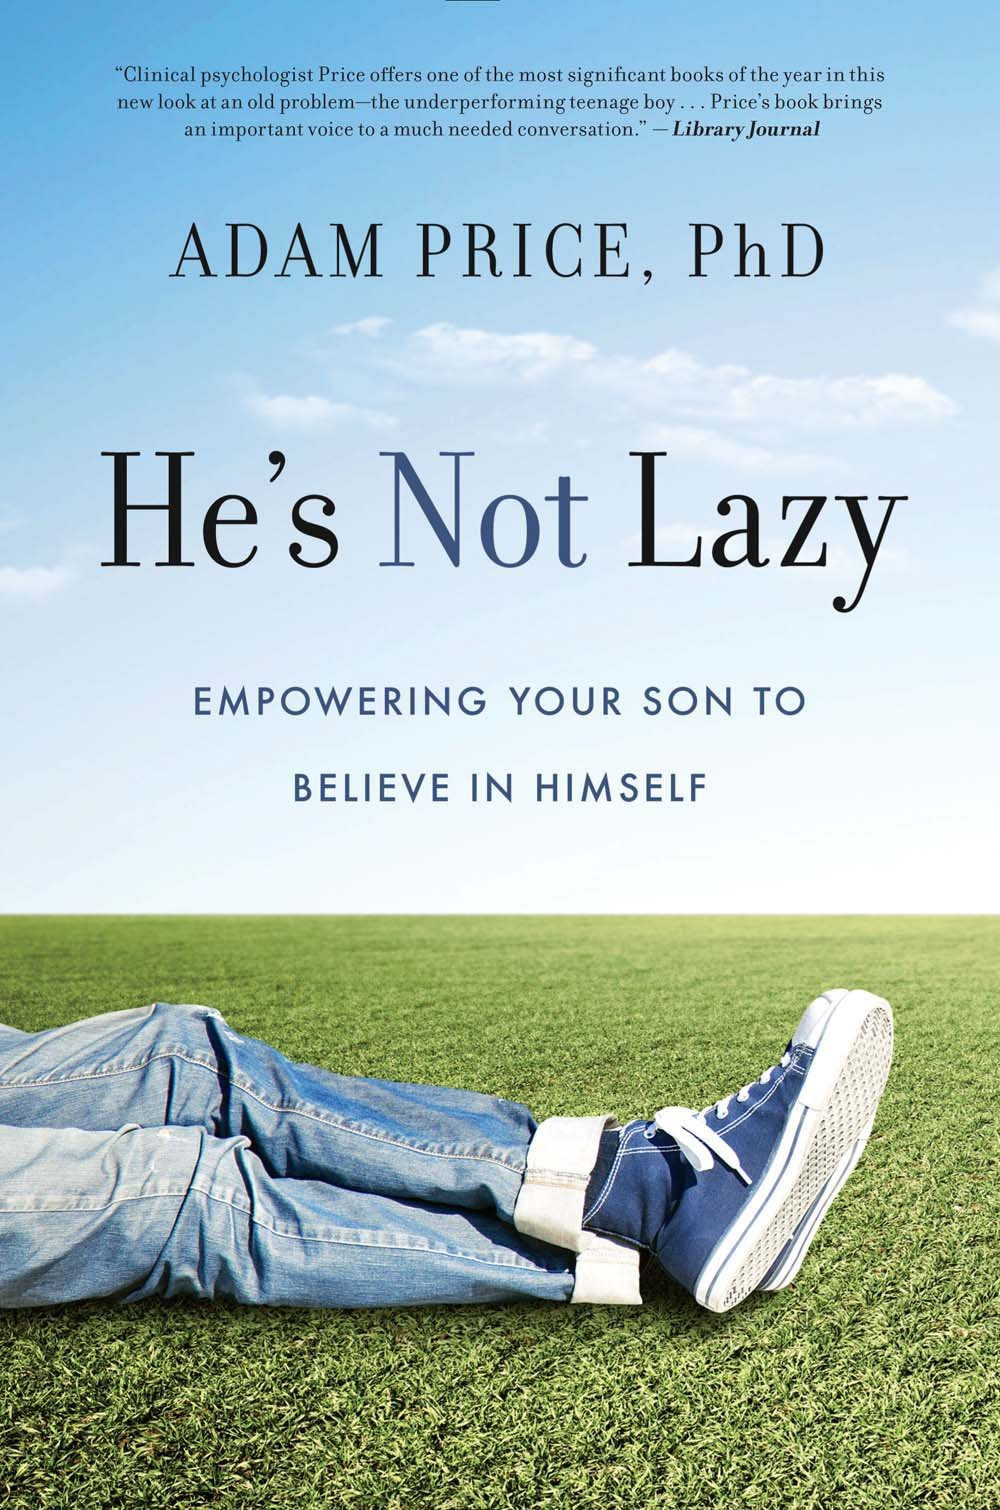 Hes Not Lazy Empowering Believe product image